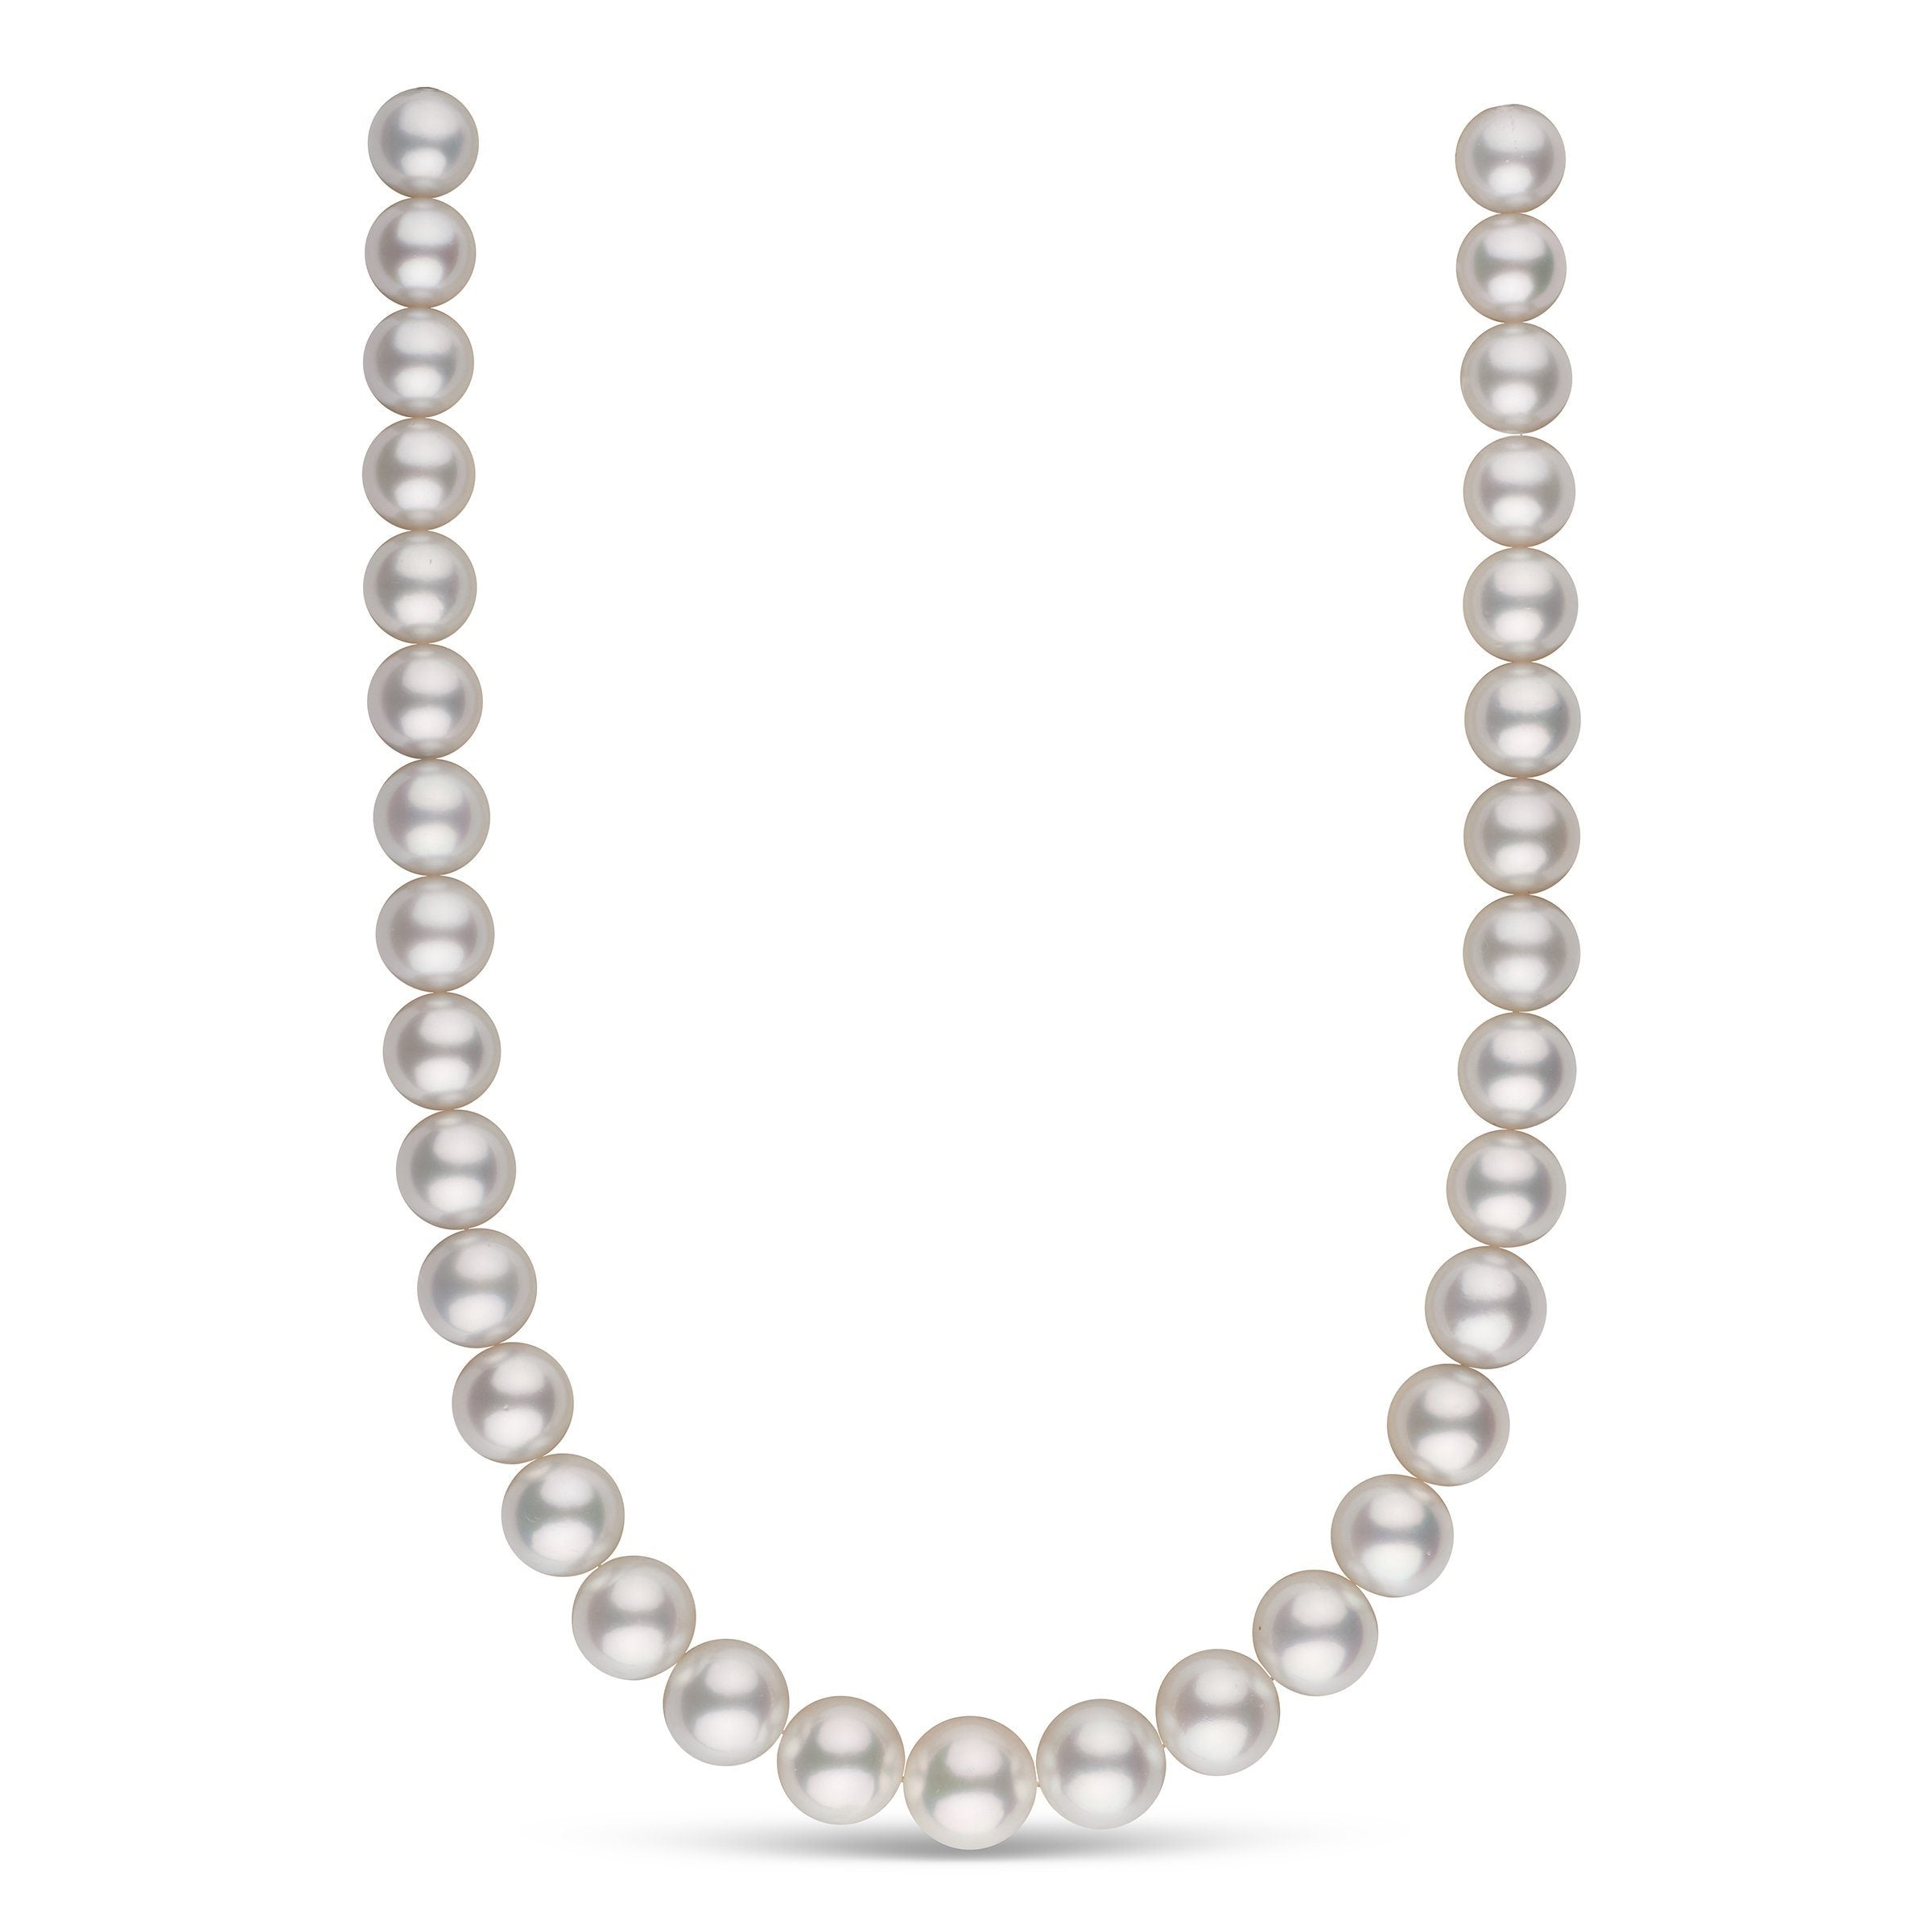 The Suite No. 1 White South Sea Pearl Necklace